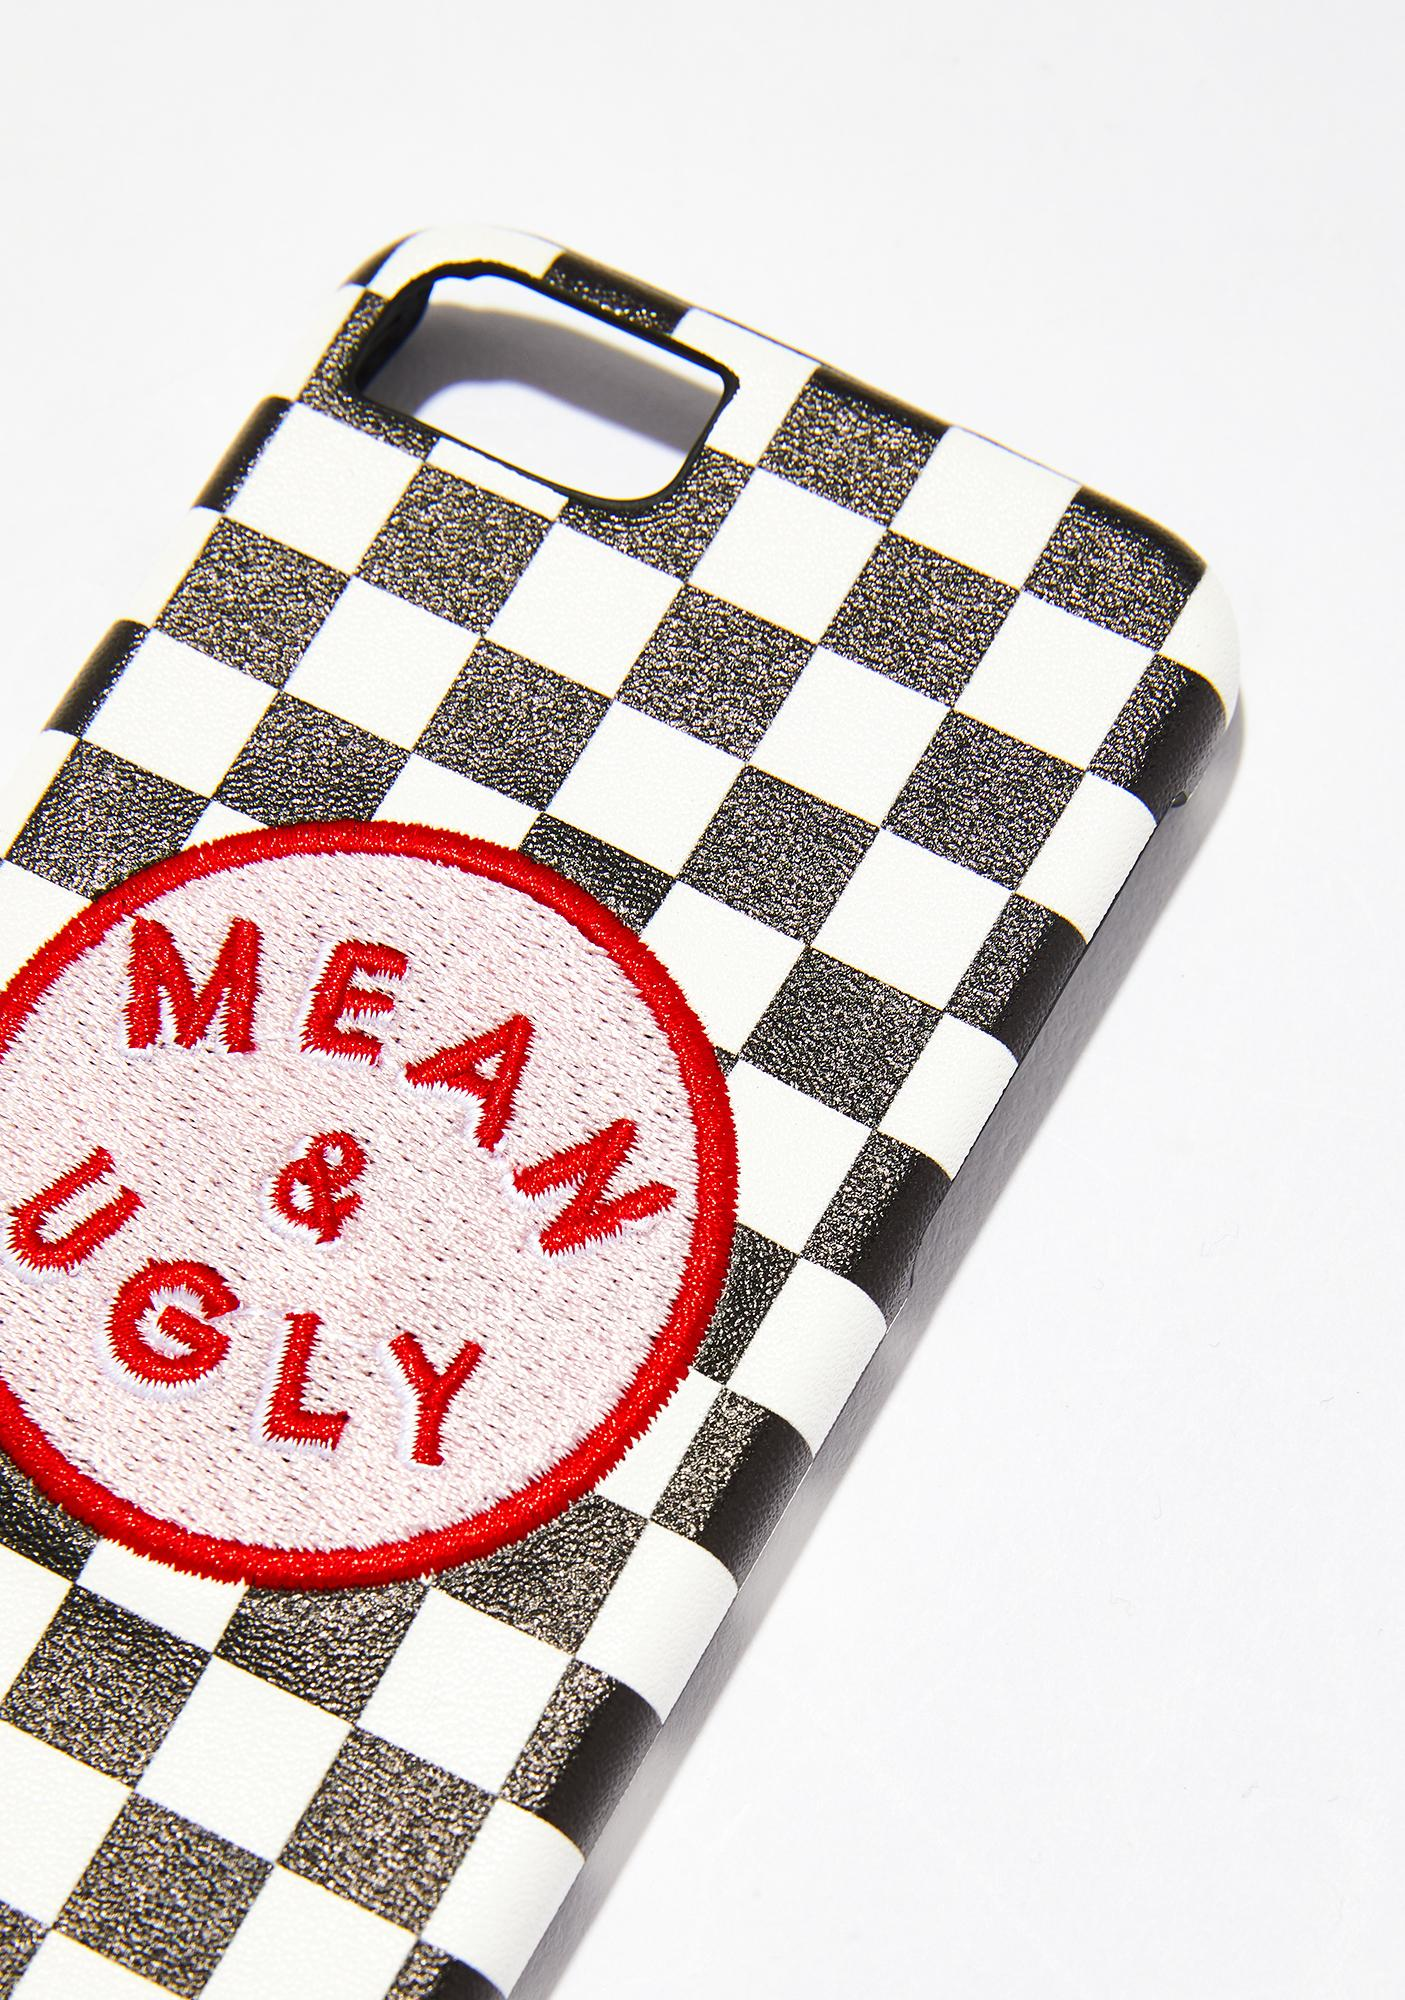 Valfré Mean & Ugly iPhone Case